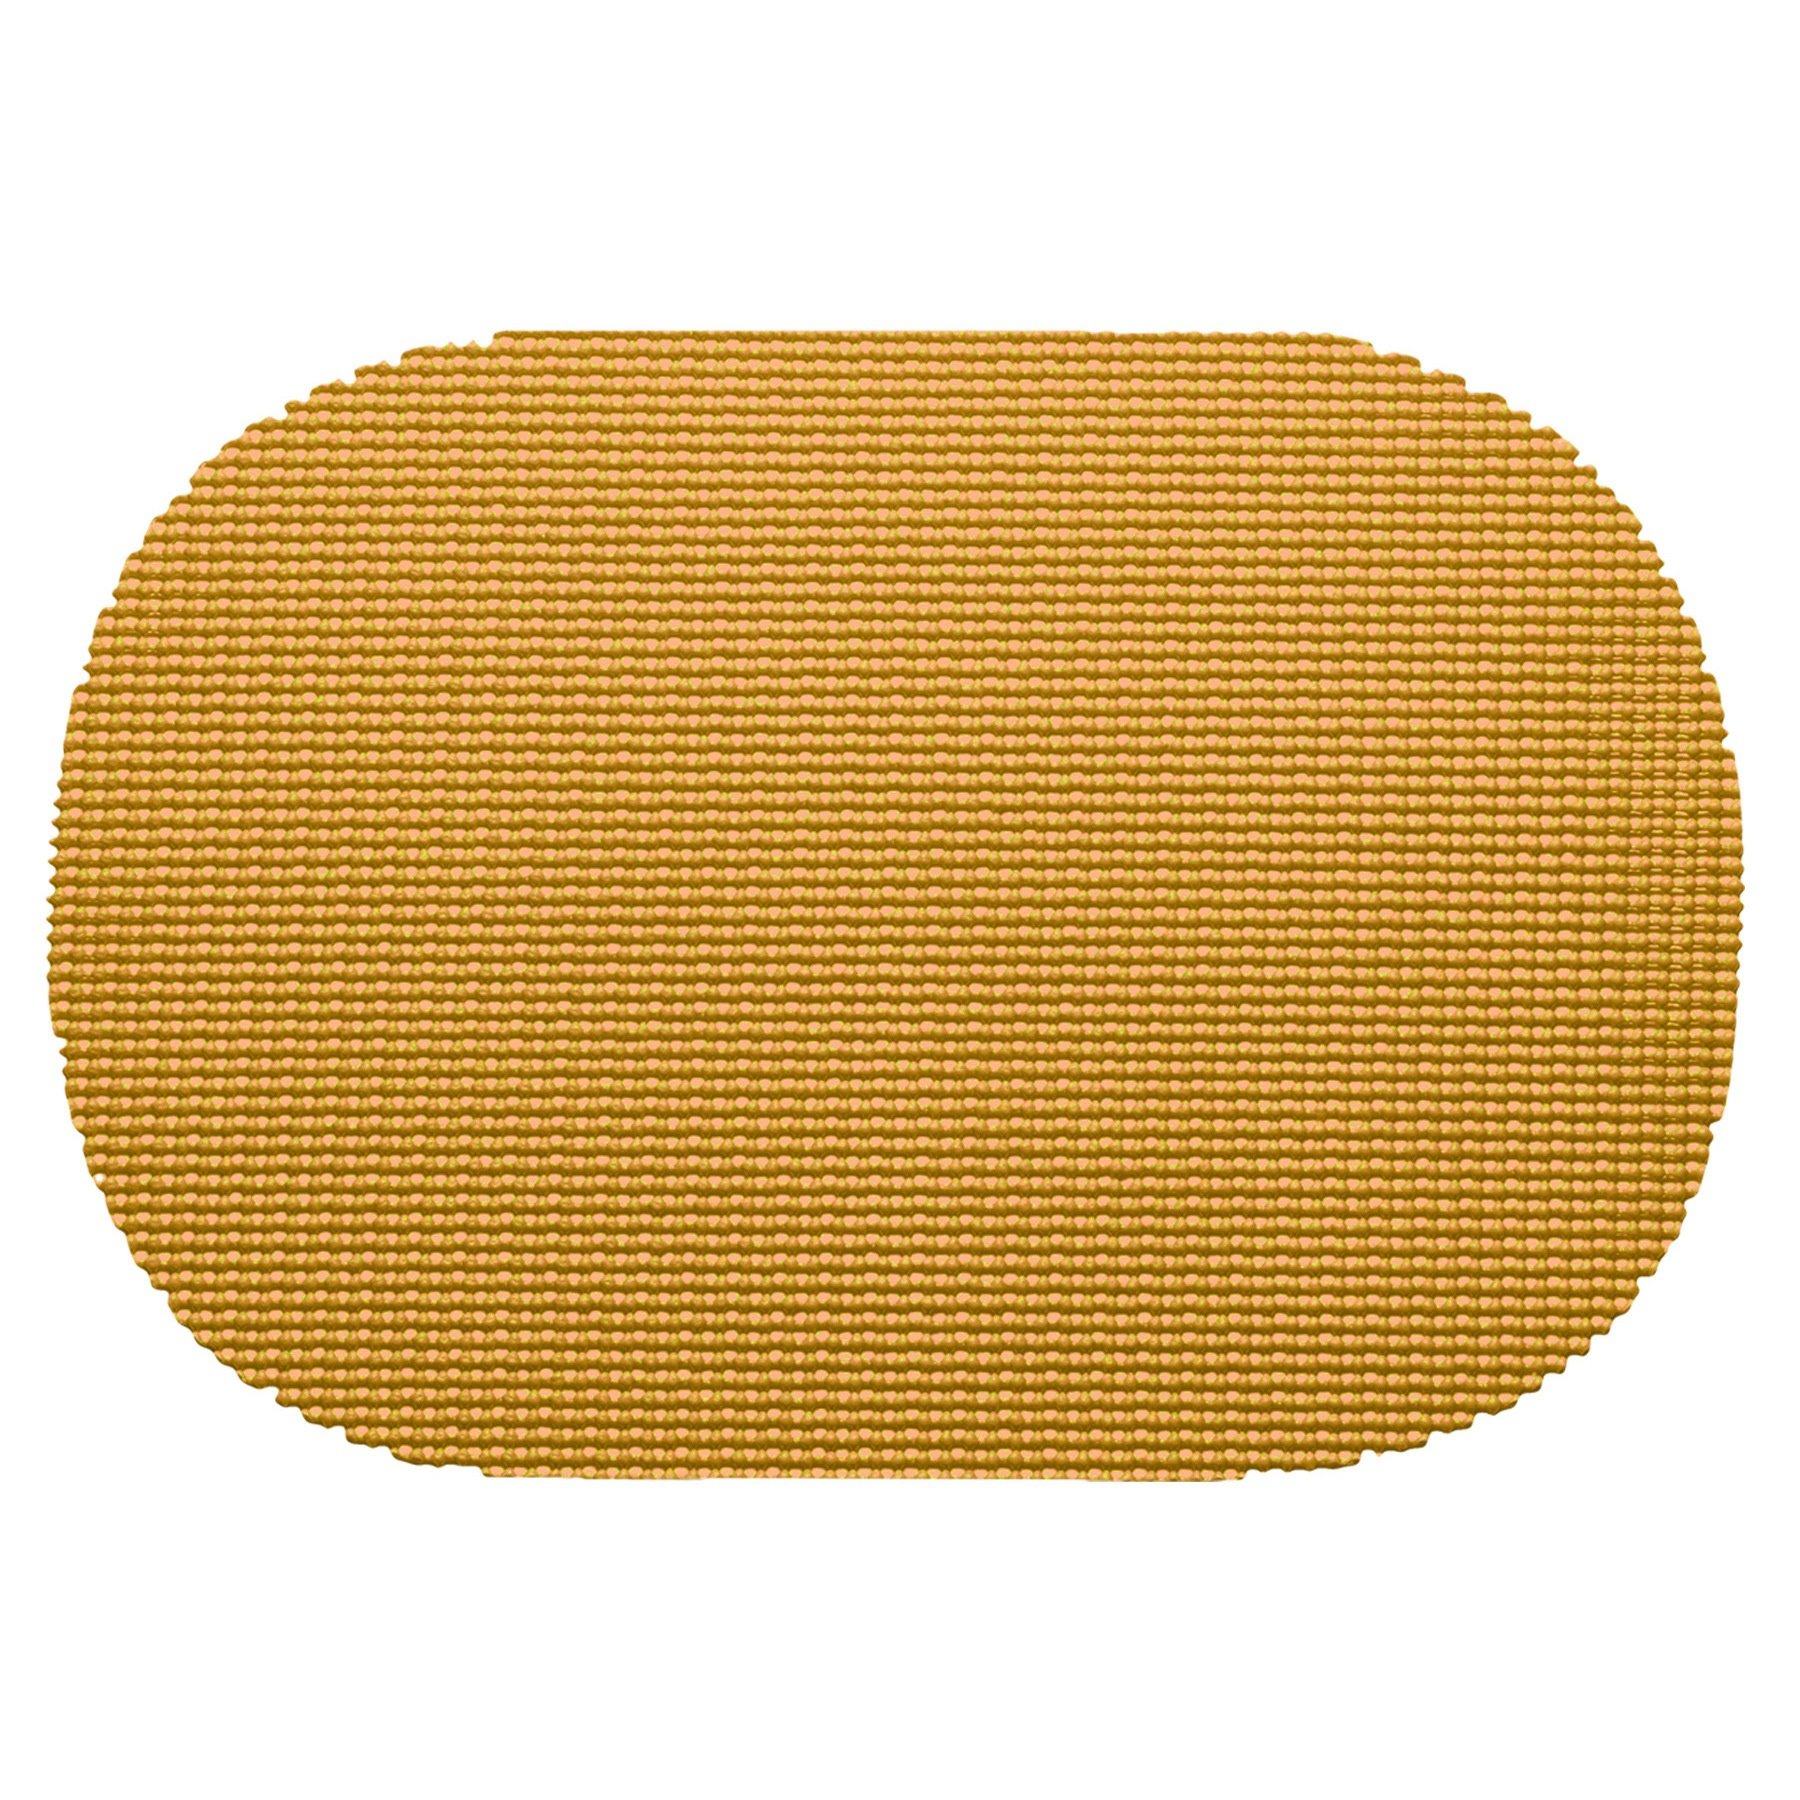 12 Piece Golden Placemats,(Set of 12), Machine Washable, Solid Pattern, Oval Shape, Contemporary And Traditional Style, Perfect For Everyday Entertaining, Season Or Holiday Lace Material, Yellow